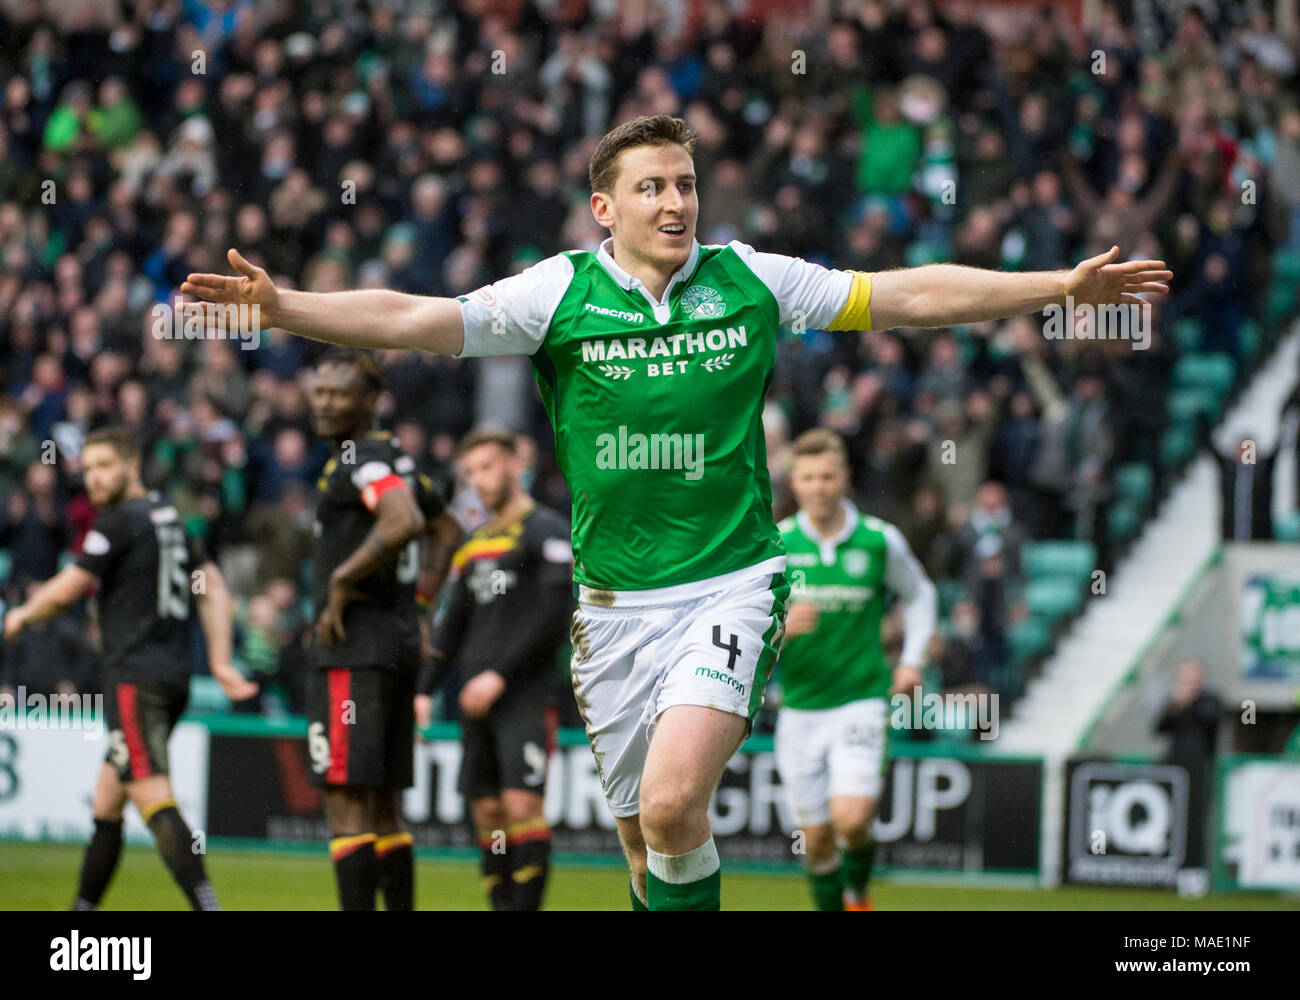 Scottish Premiereship, Hibernian v Partick Thistle, Edinburgh, Midlothian, UK. 31,03, 2018. Pic shows:  Hibs defender, Paul Hanlon, celebrates after scoring his side's second goal during the second half of the Scottish Premiereship clash between Hibernian and Partick Thistle at Easter Road Stadium, Edinburgh.   Credit: Alamy/Ian Jacobs - Stock Image